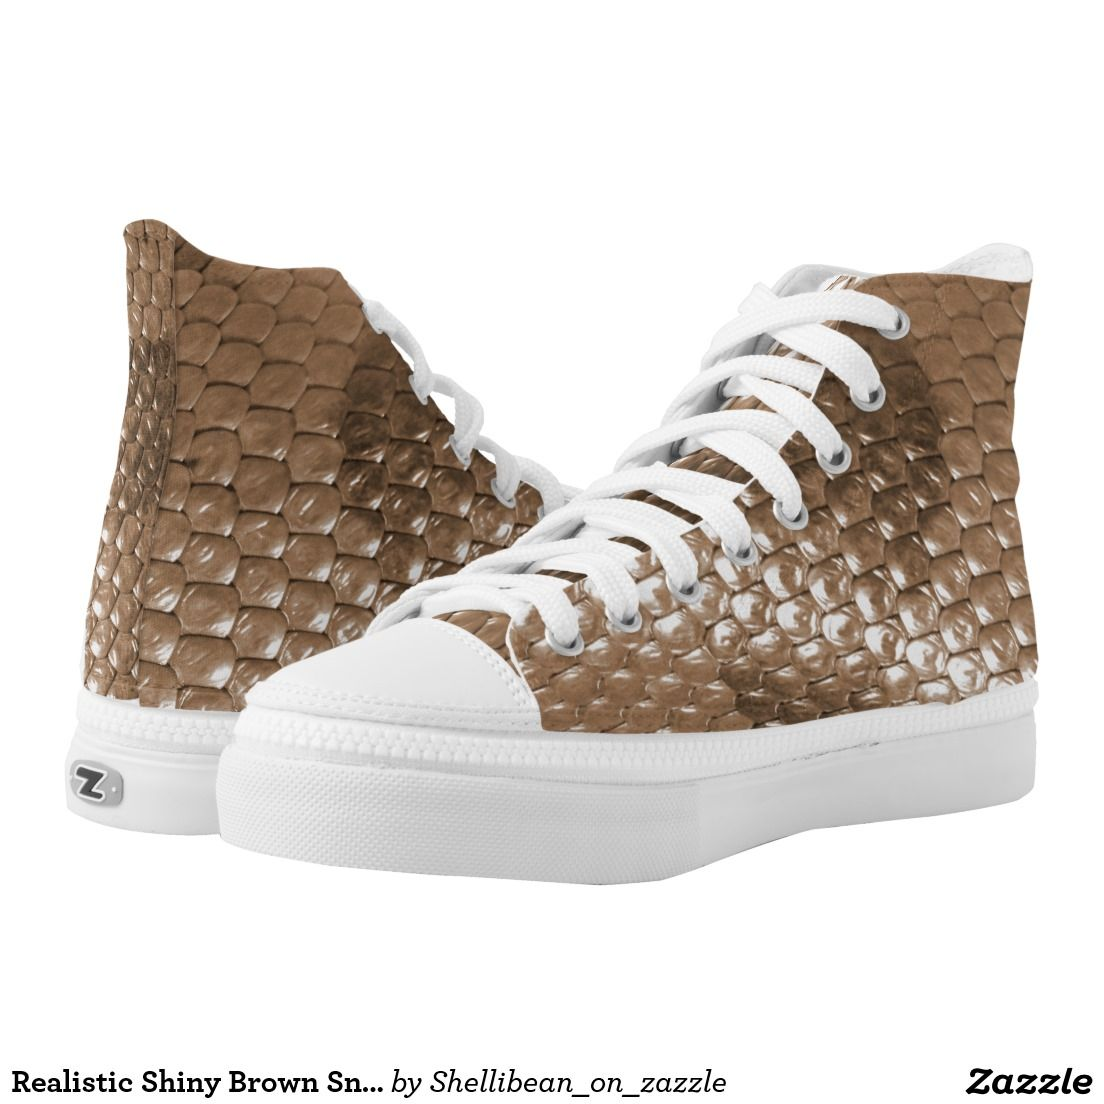 Realistic Shiny Brown Snakeskin Look Printed Shoes